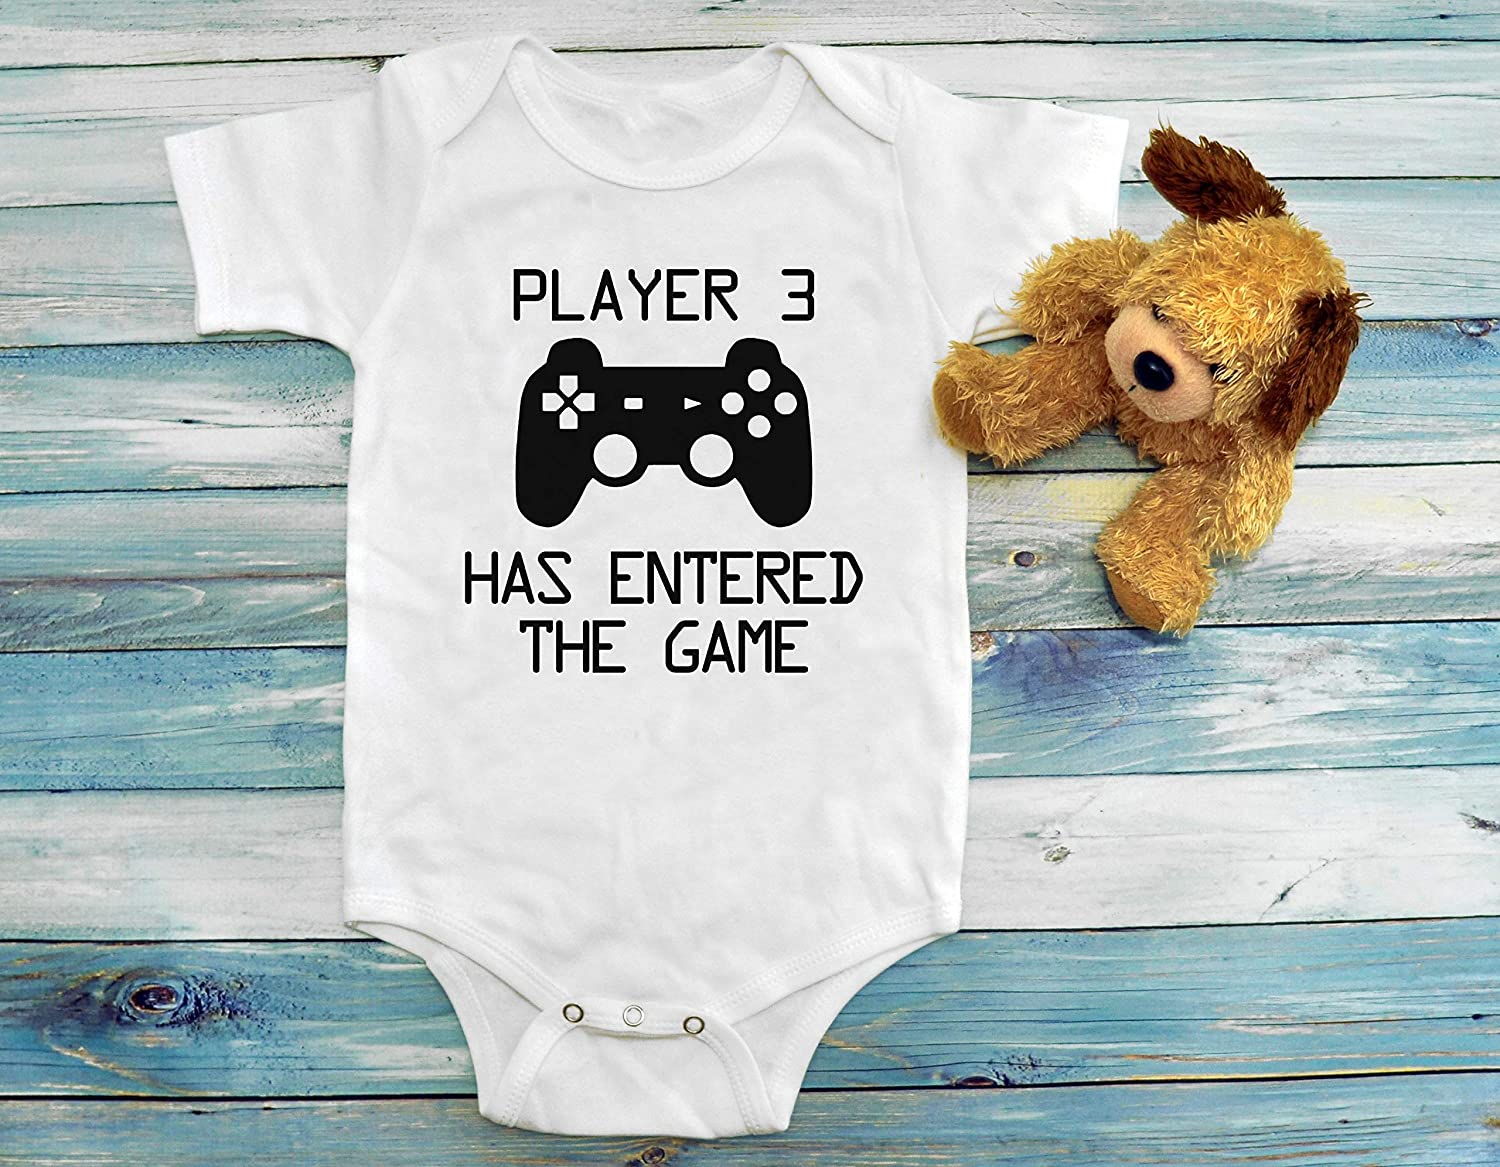 9ff22b58ddc Amazon.com: Player 3 Has Entered The Game - Baby Onesie - Baby ...